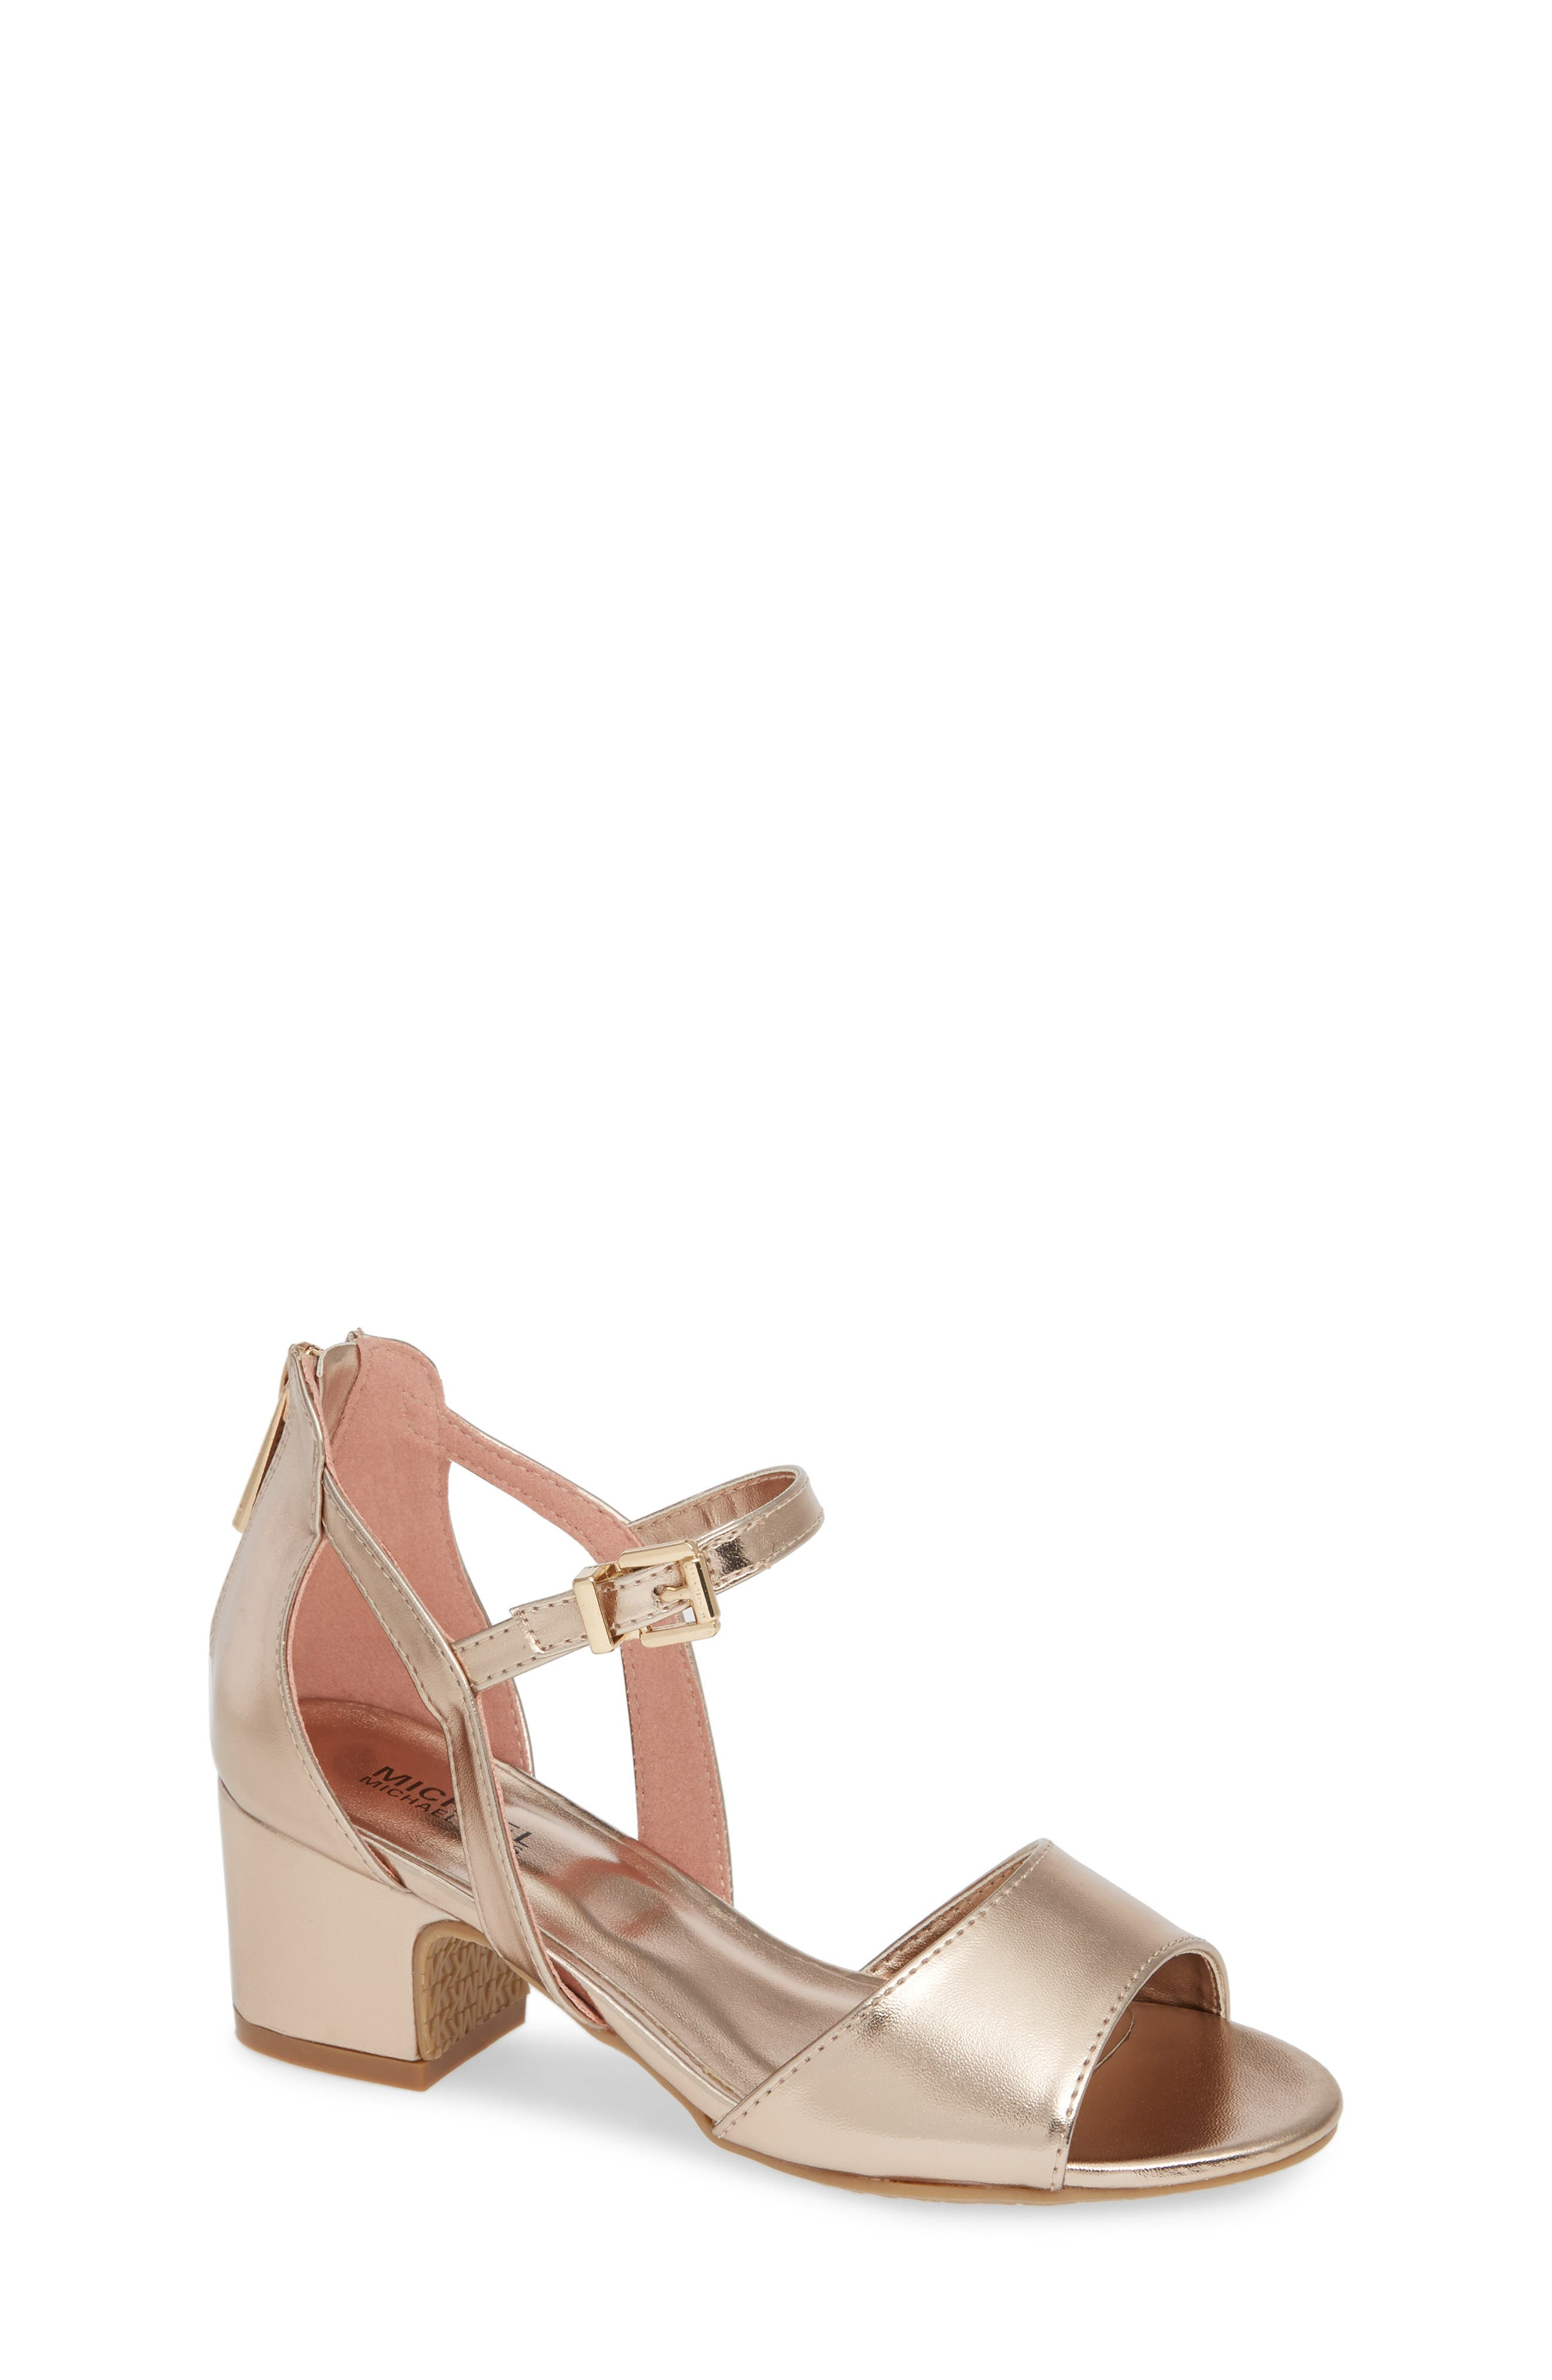 Gemini Jones Sandal,                         Main,                         color, ROSE GOLD